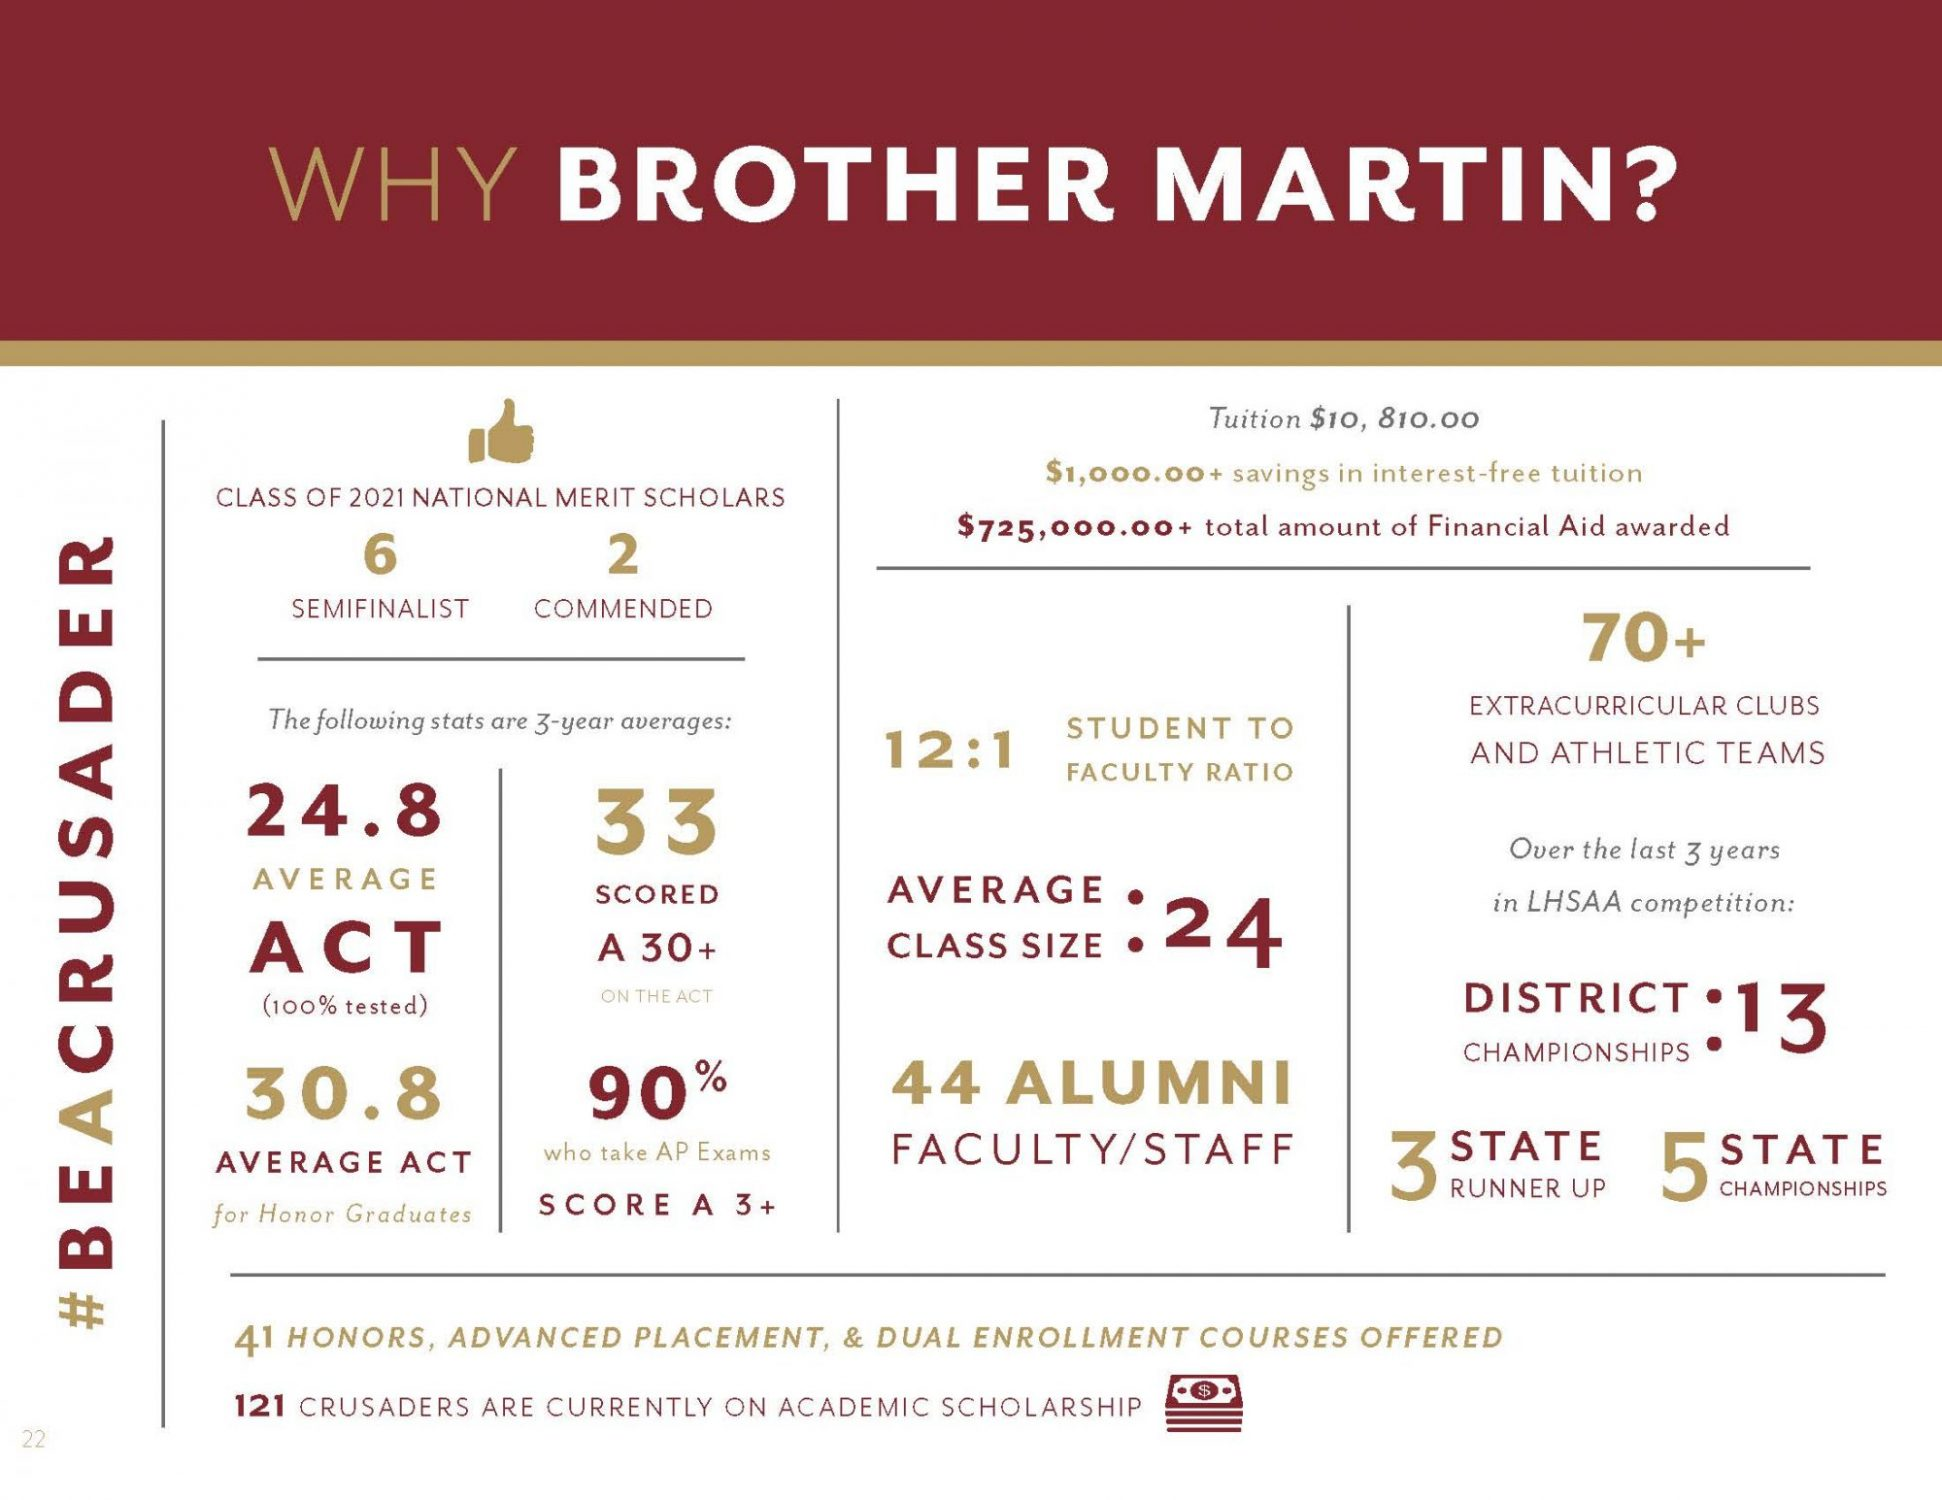 Why Brother Martin